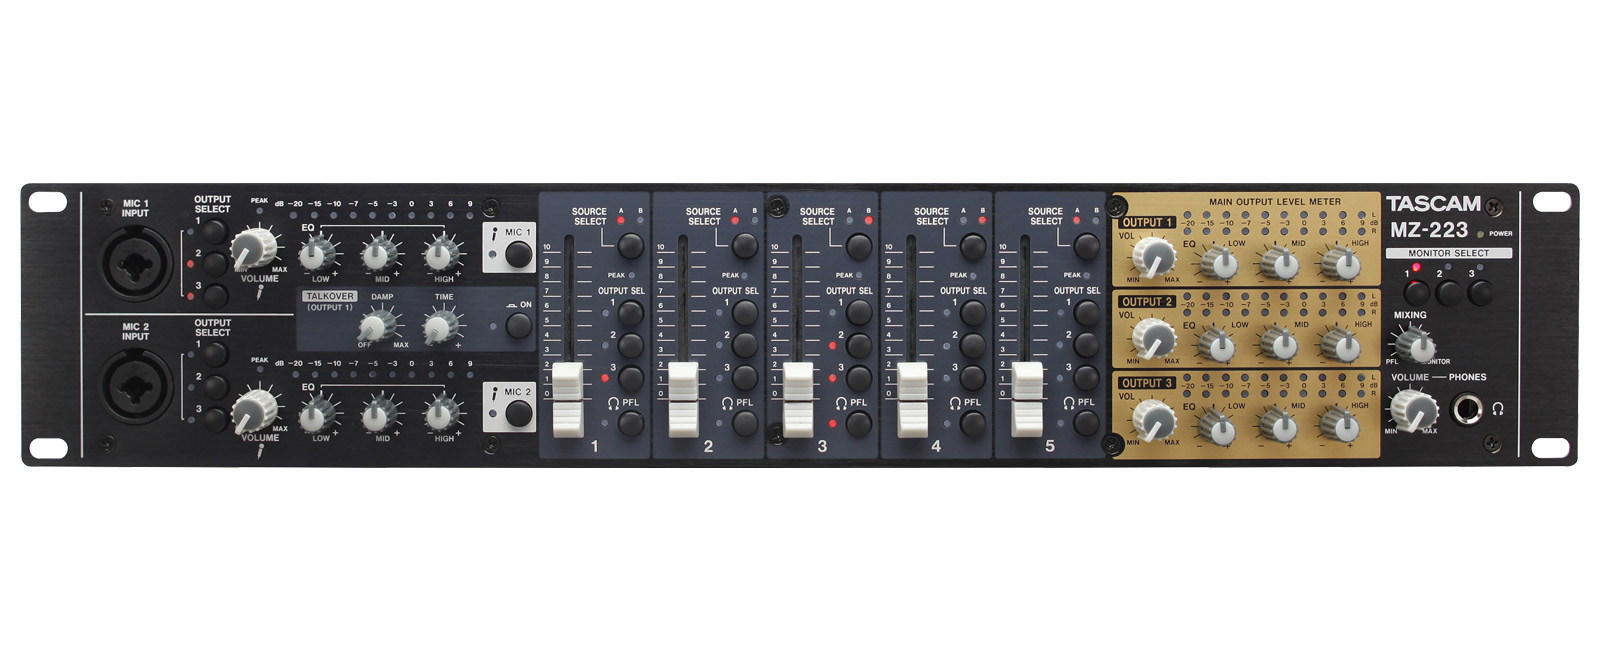 Tascam MZ-223 5channels Black audio mixer